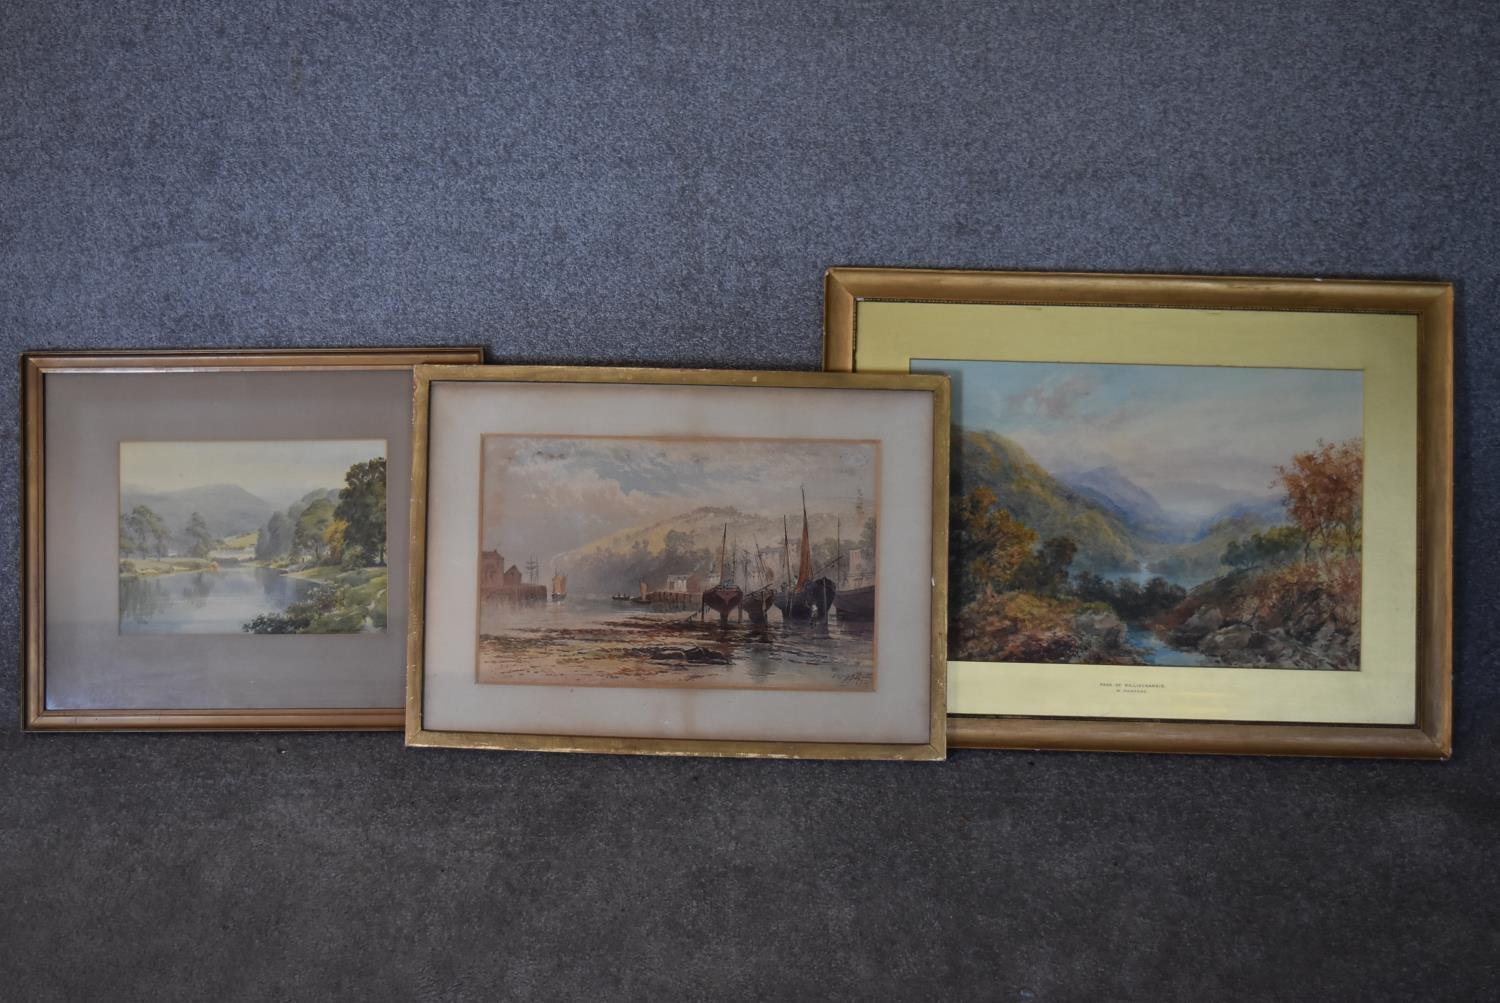 A framed and glazed watercolour; The Pass of Killliecrancie by W. Harford and two other framed and